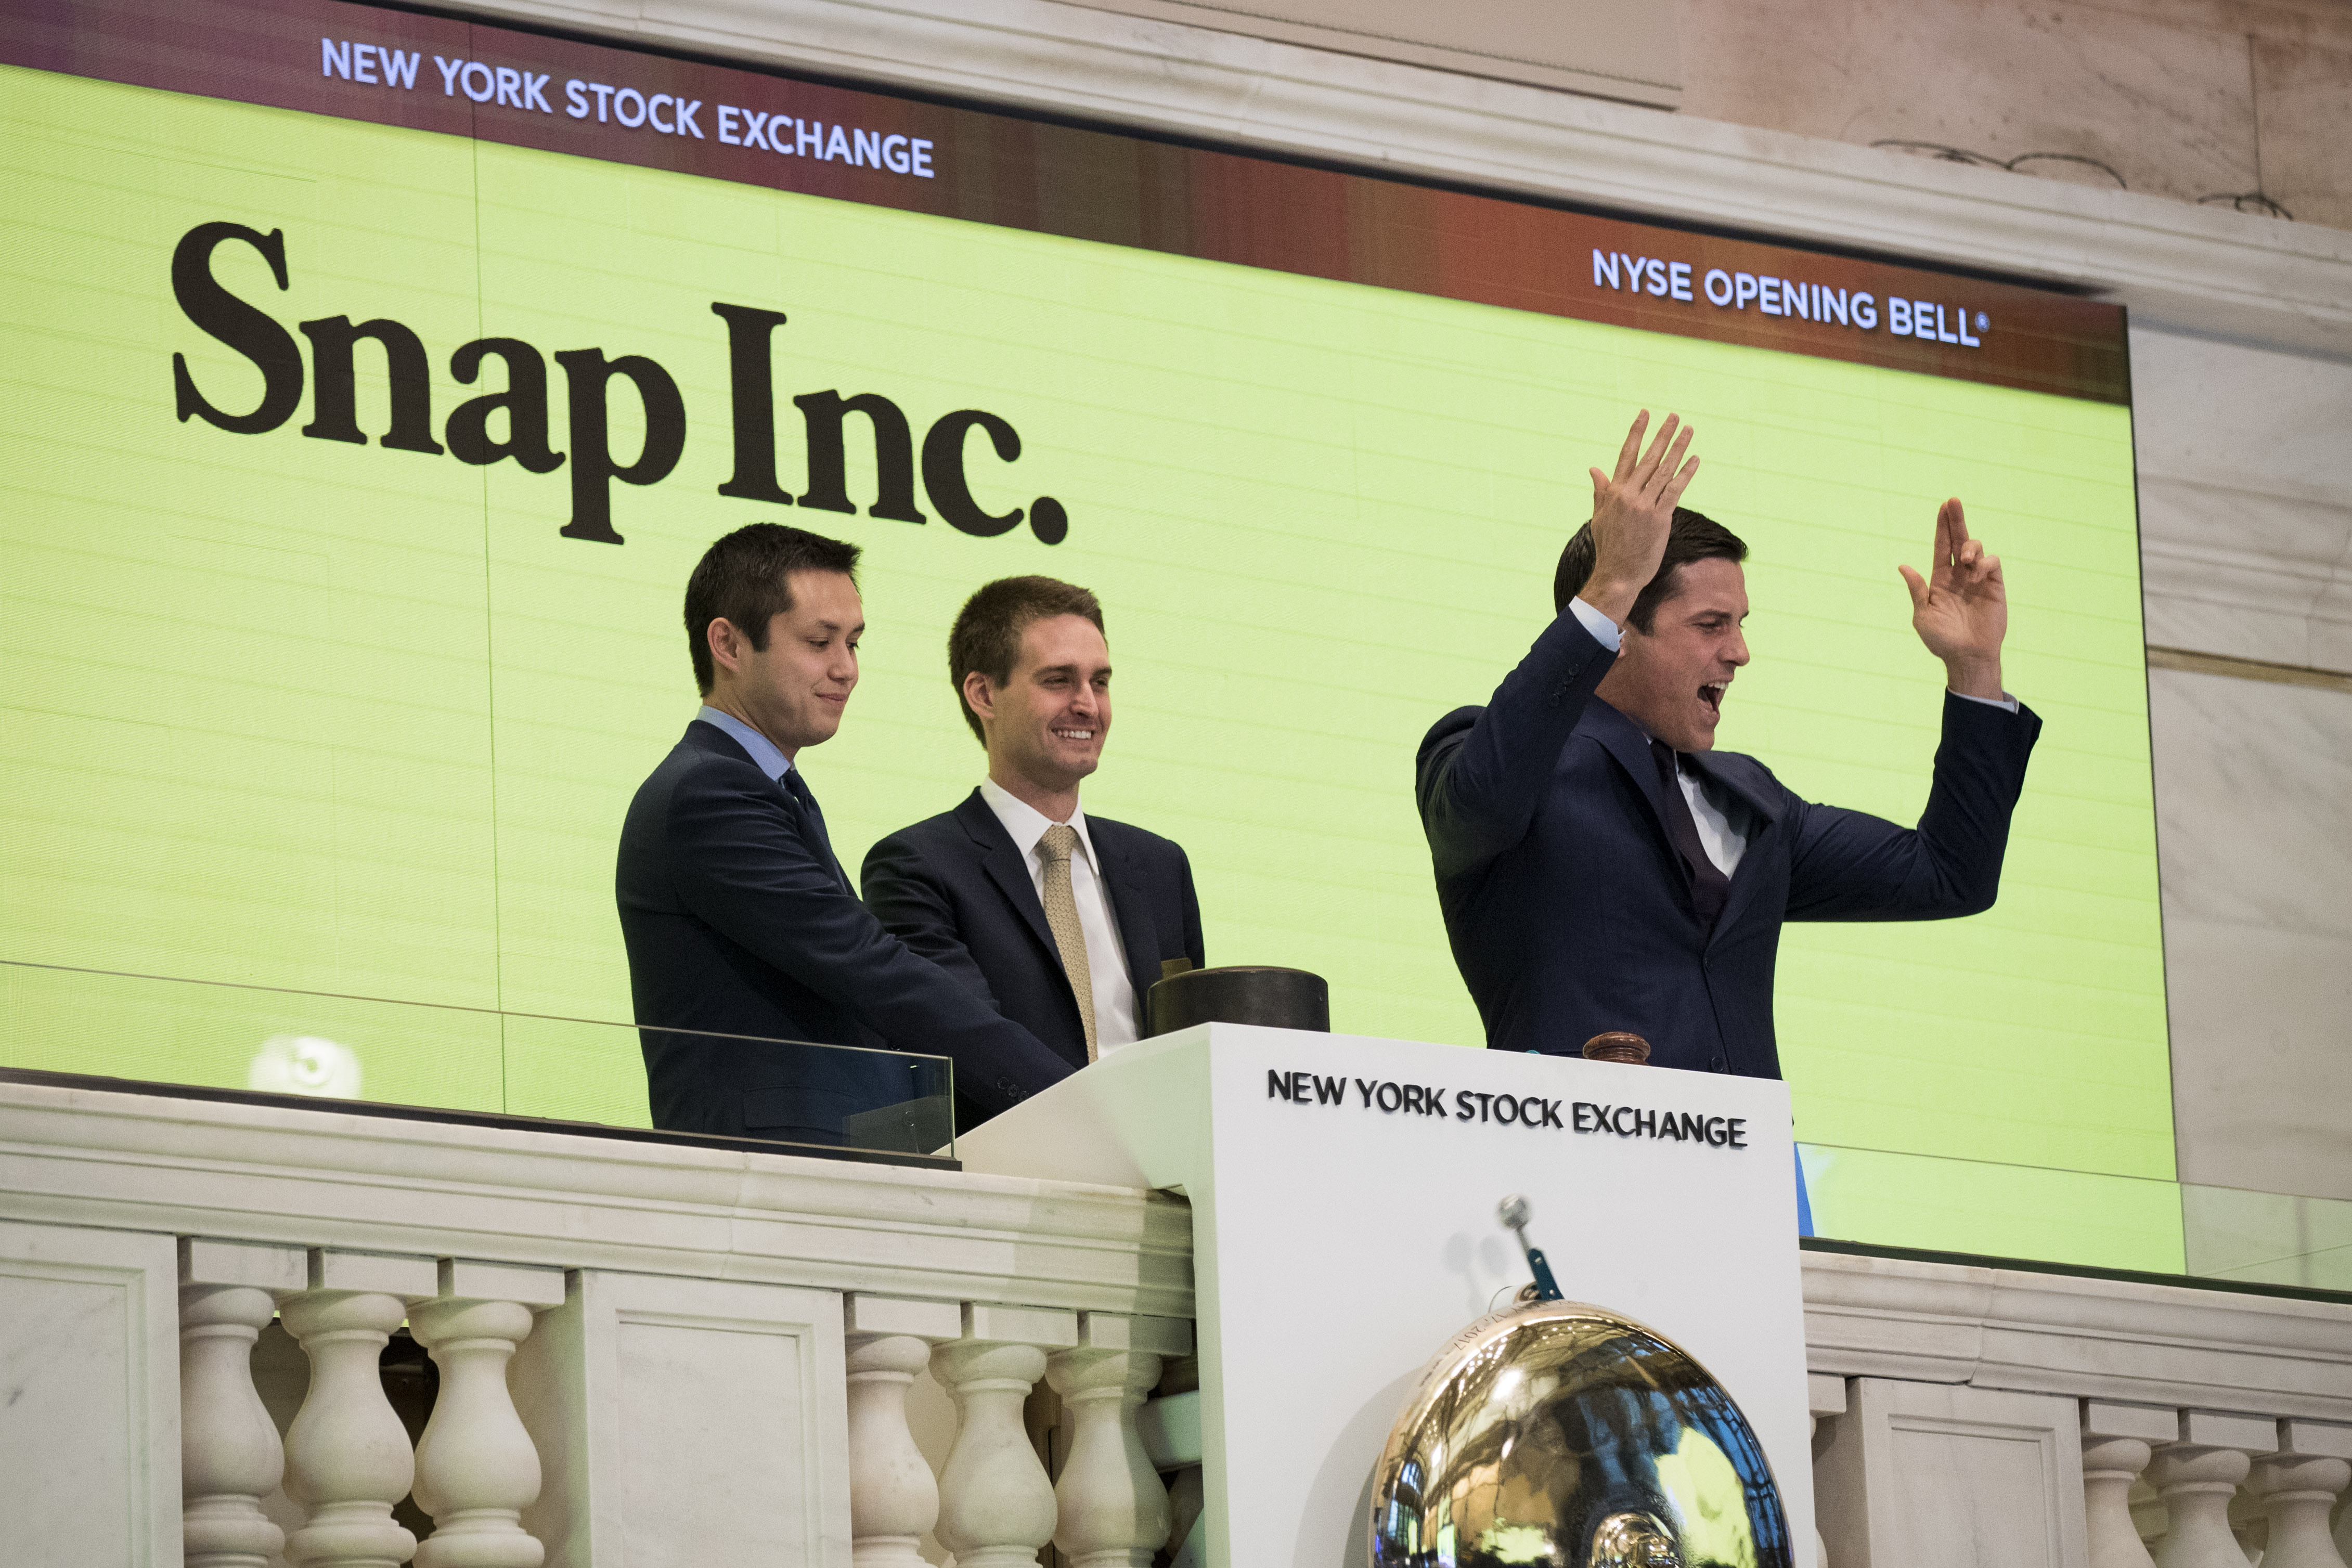 """Snapchat co-founders Bobby Murphy and Evan Spiegel ring the opening bellon the NYSE in front of a sign reading """"Snap Inc."""""""